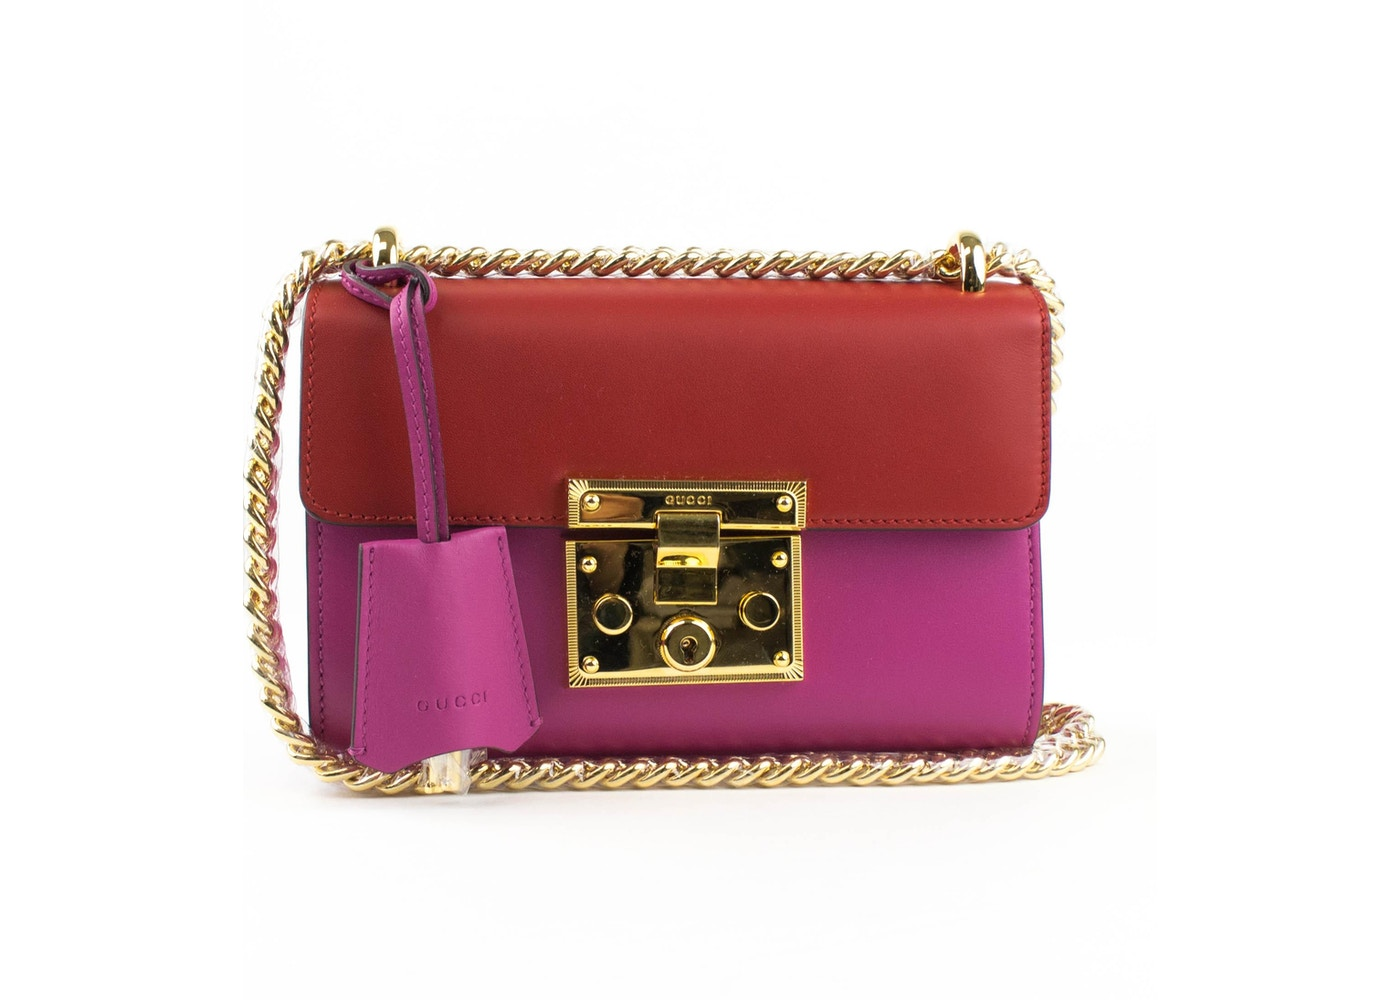 02c5b678eae4d4 Gucci Padlock Shoulder Small Pink/Red. Small Pink/Red